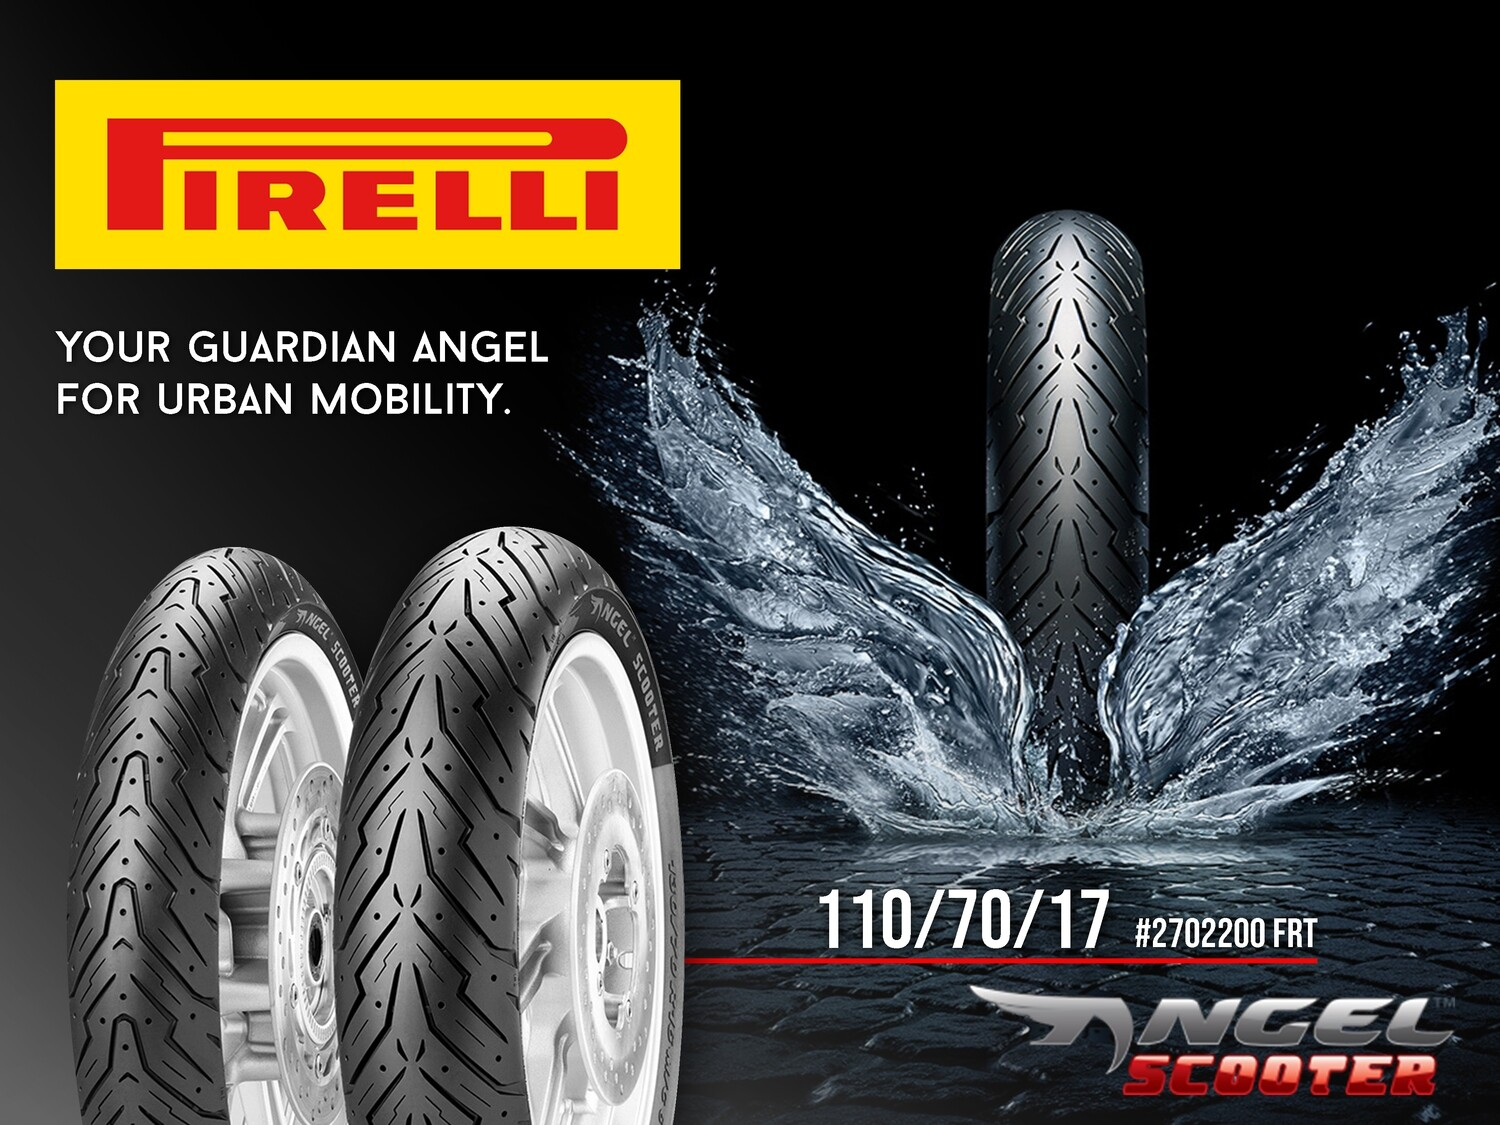 PIRELLI TIRE ANGEL 110/70/17  #2702200 FRT